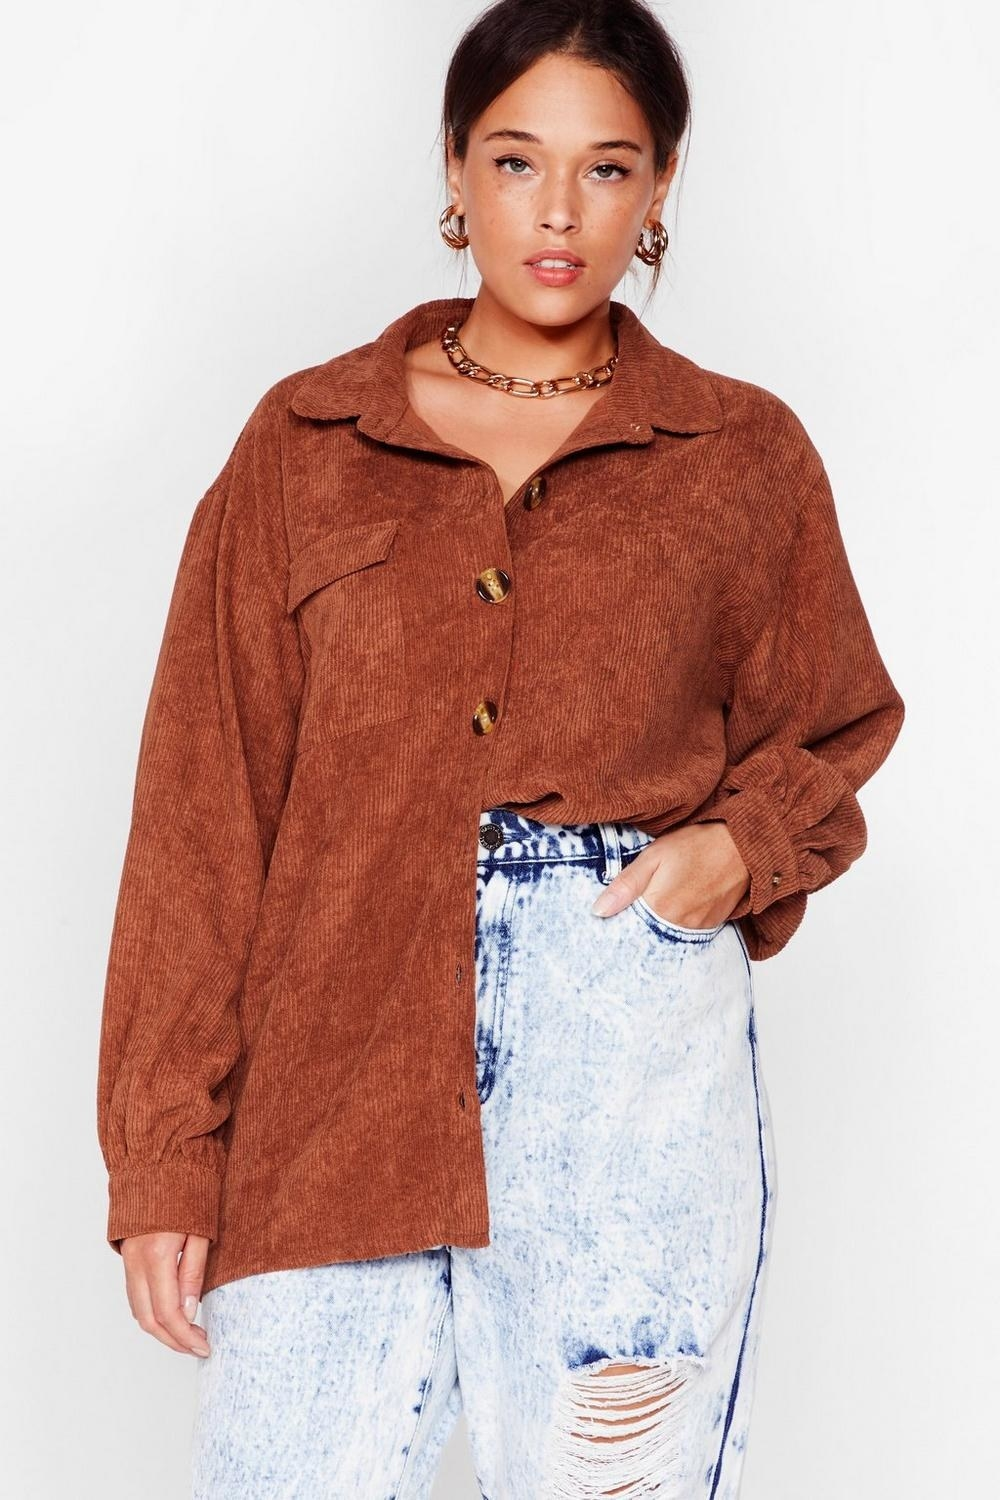 a model wearing the oversized button down top in the color brown